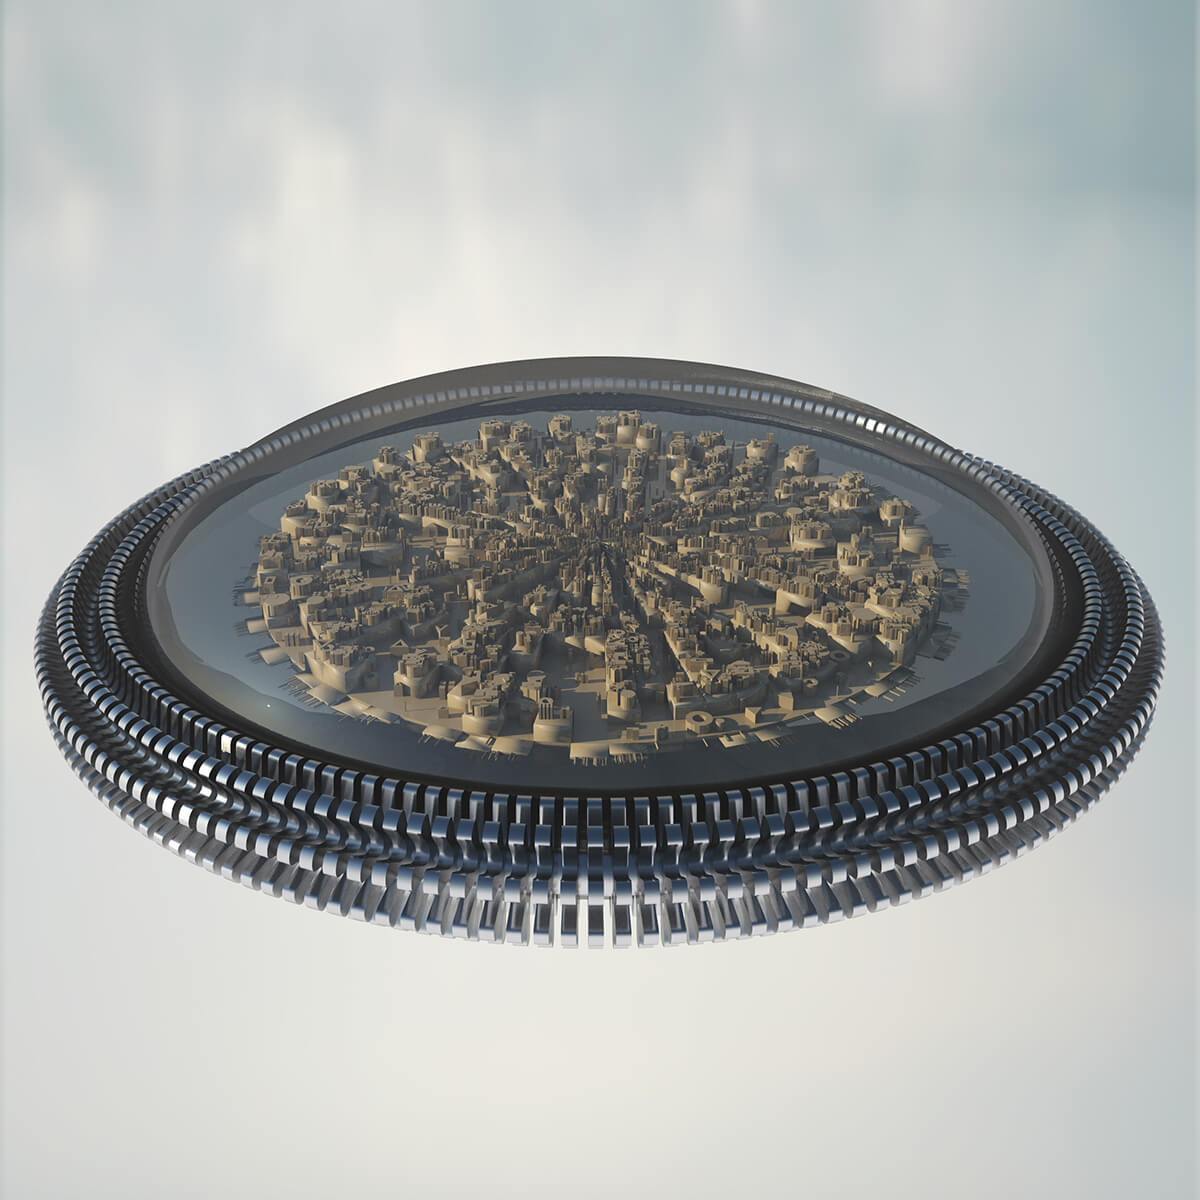 3D render of city contained in a glass dome on a floating metal platform